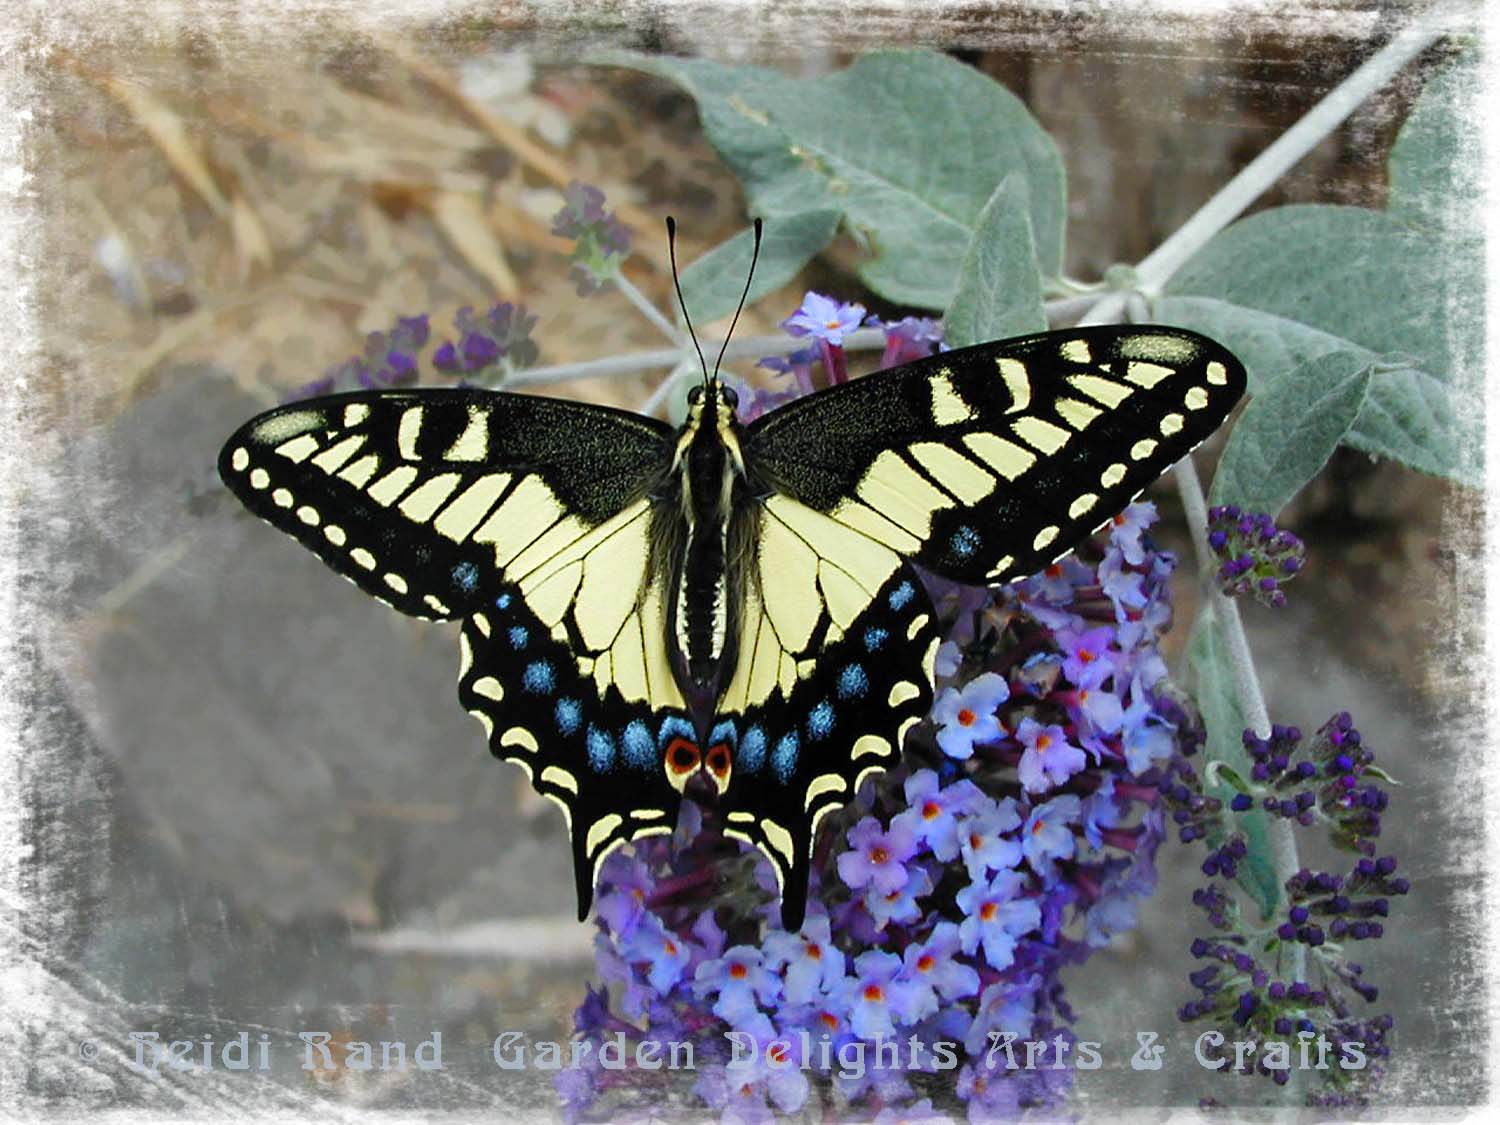 Swallowtail butterfly on blue butterfly bush flower